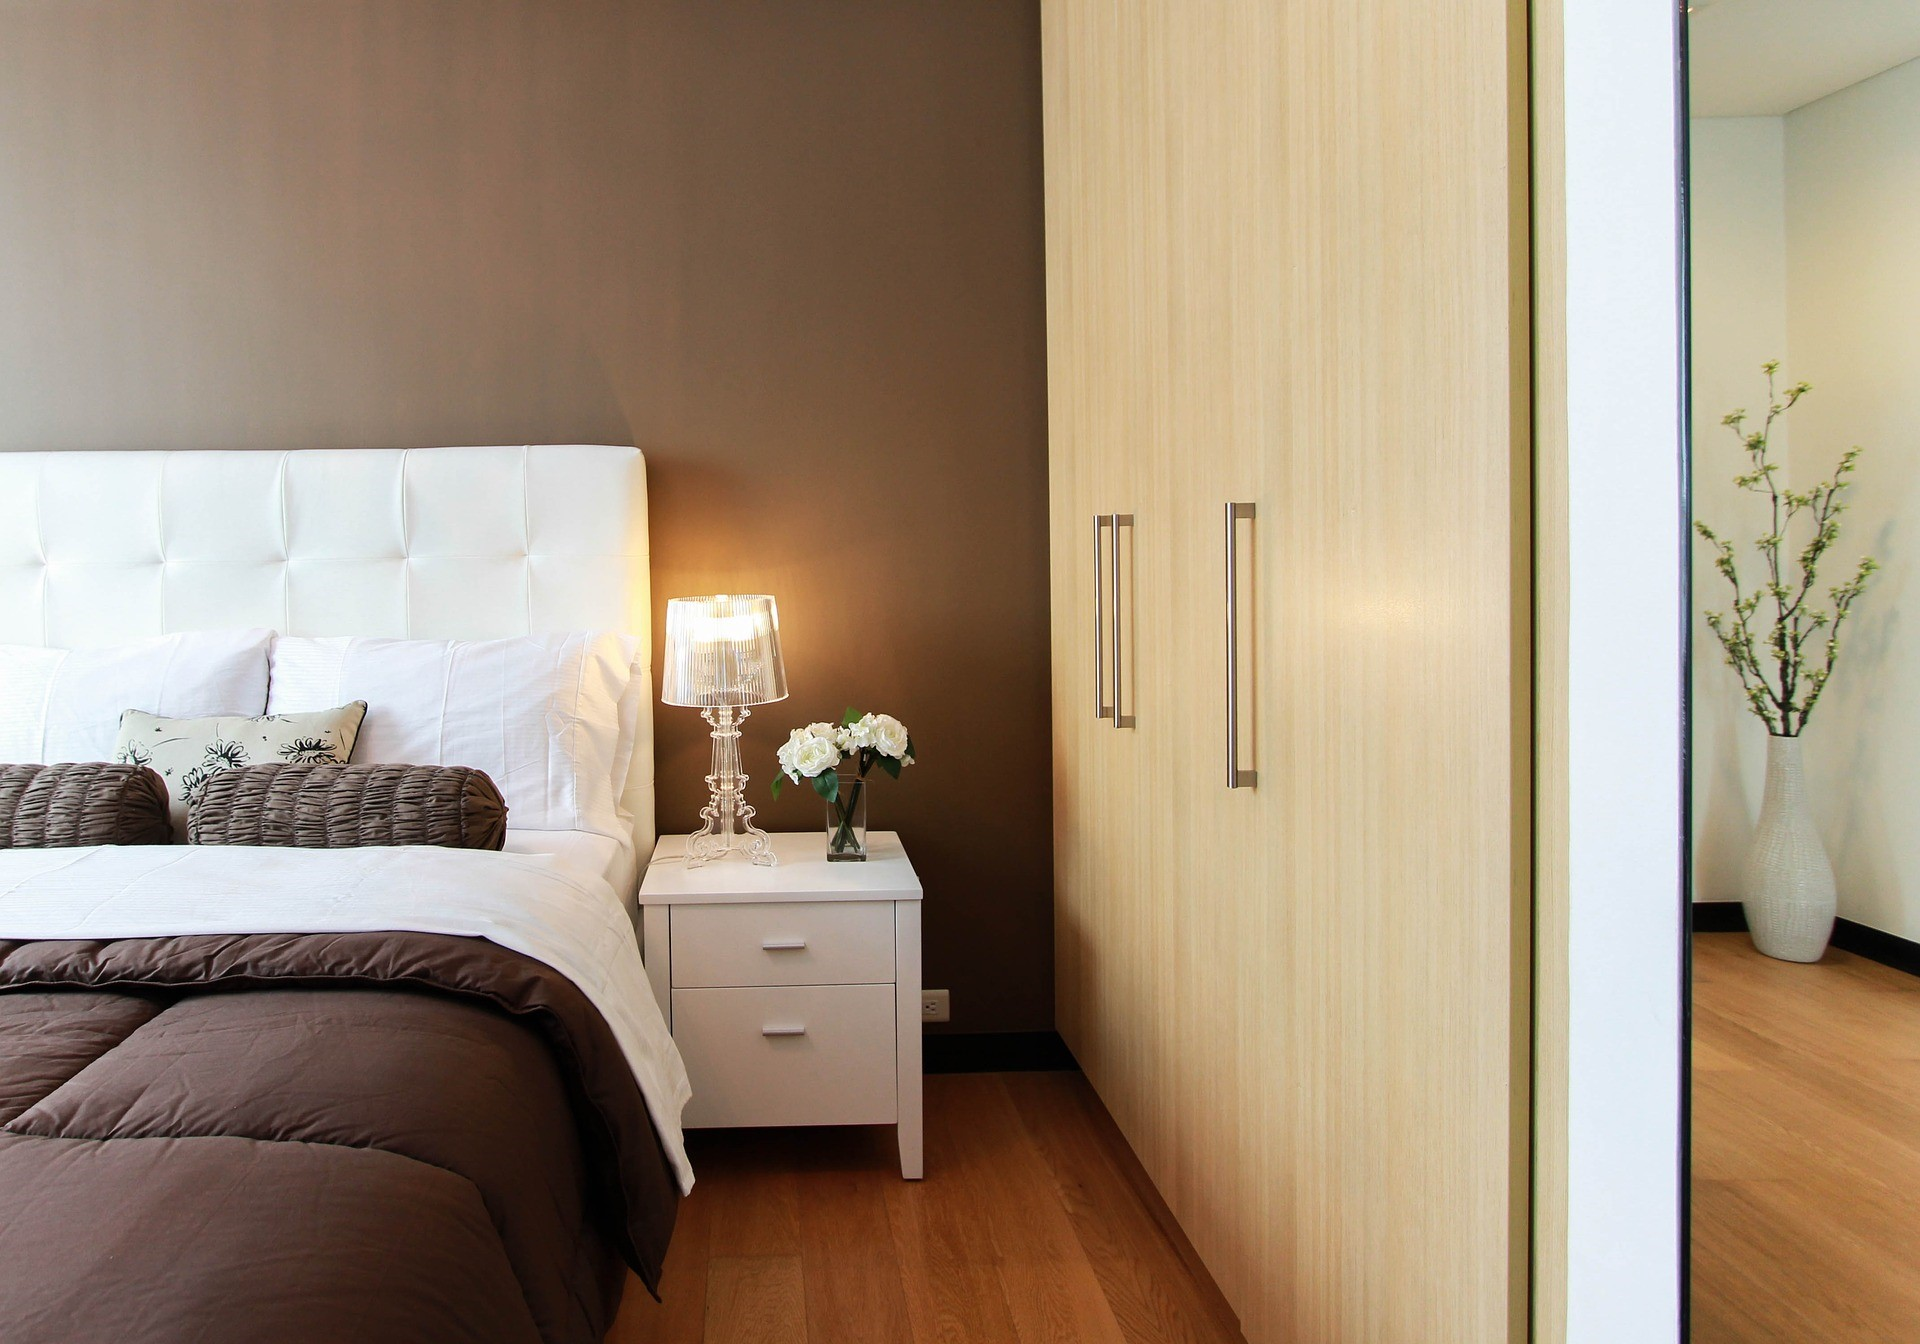 Bedroom Organization For The Visually Impaired The Blind Guide